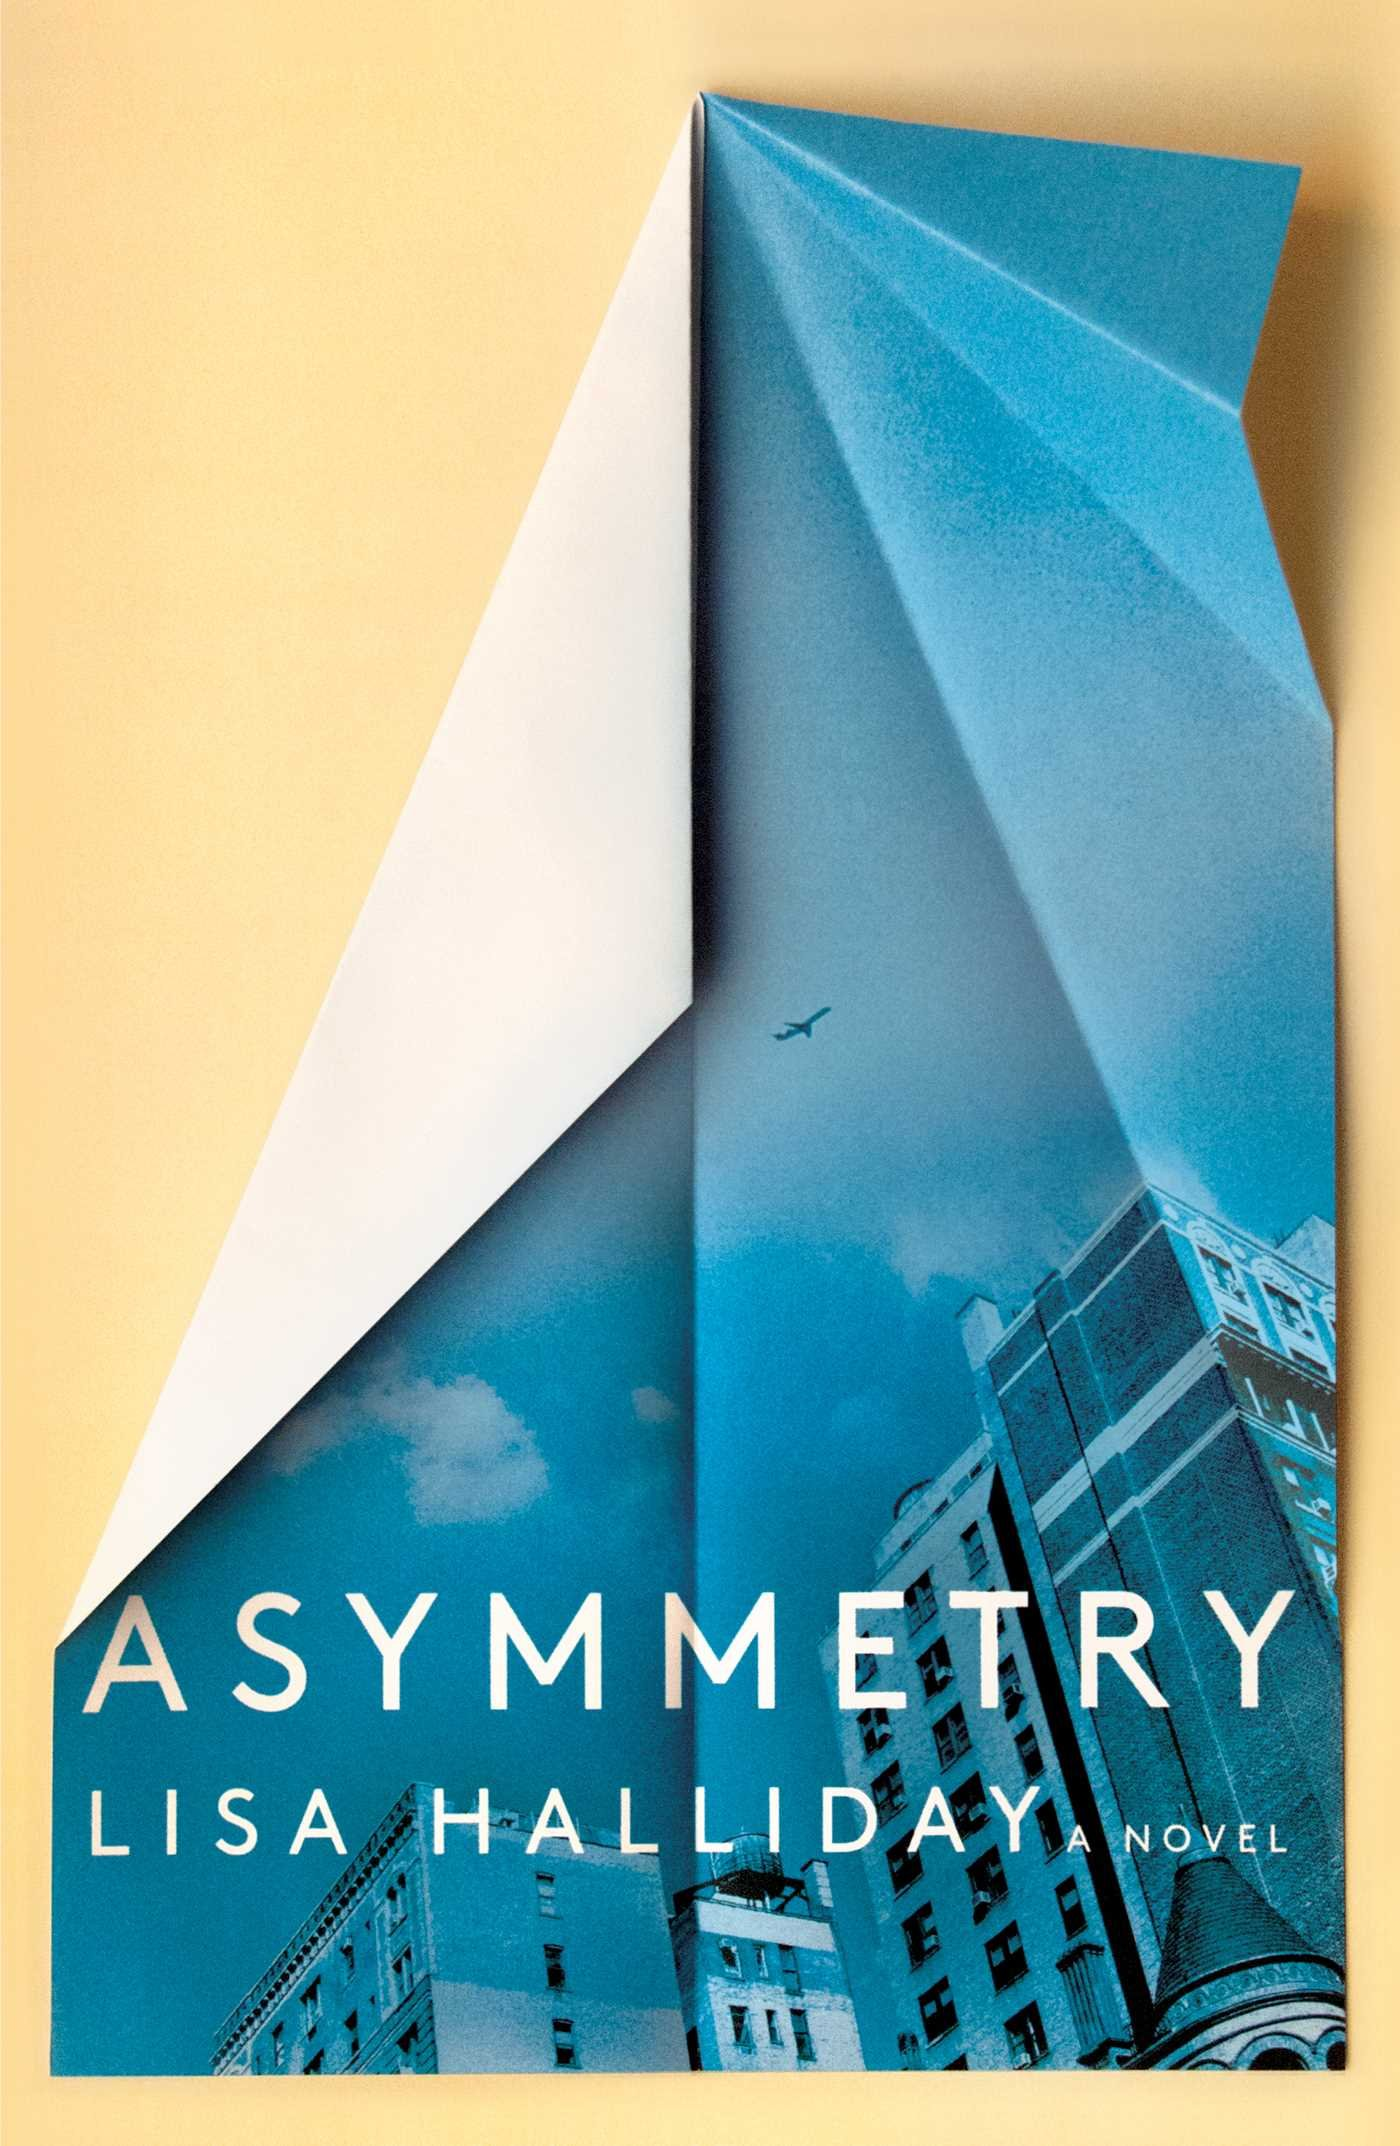 Image result for asymmetry by lisa halliday